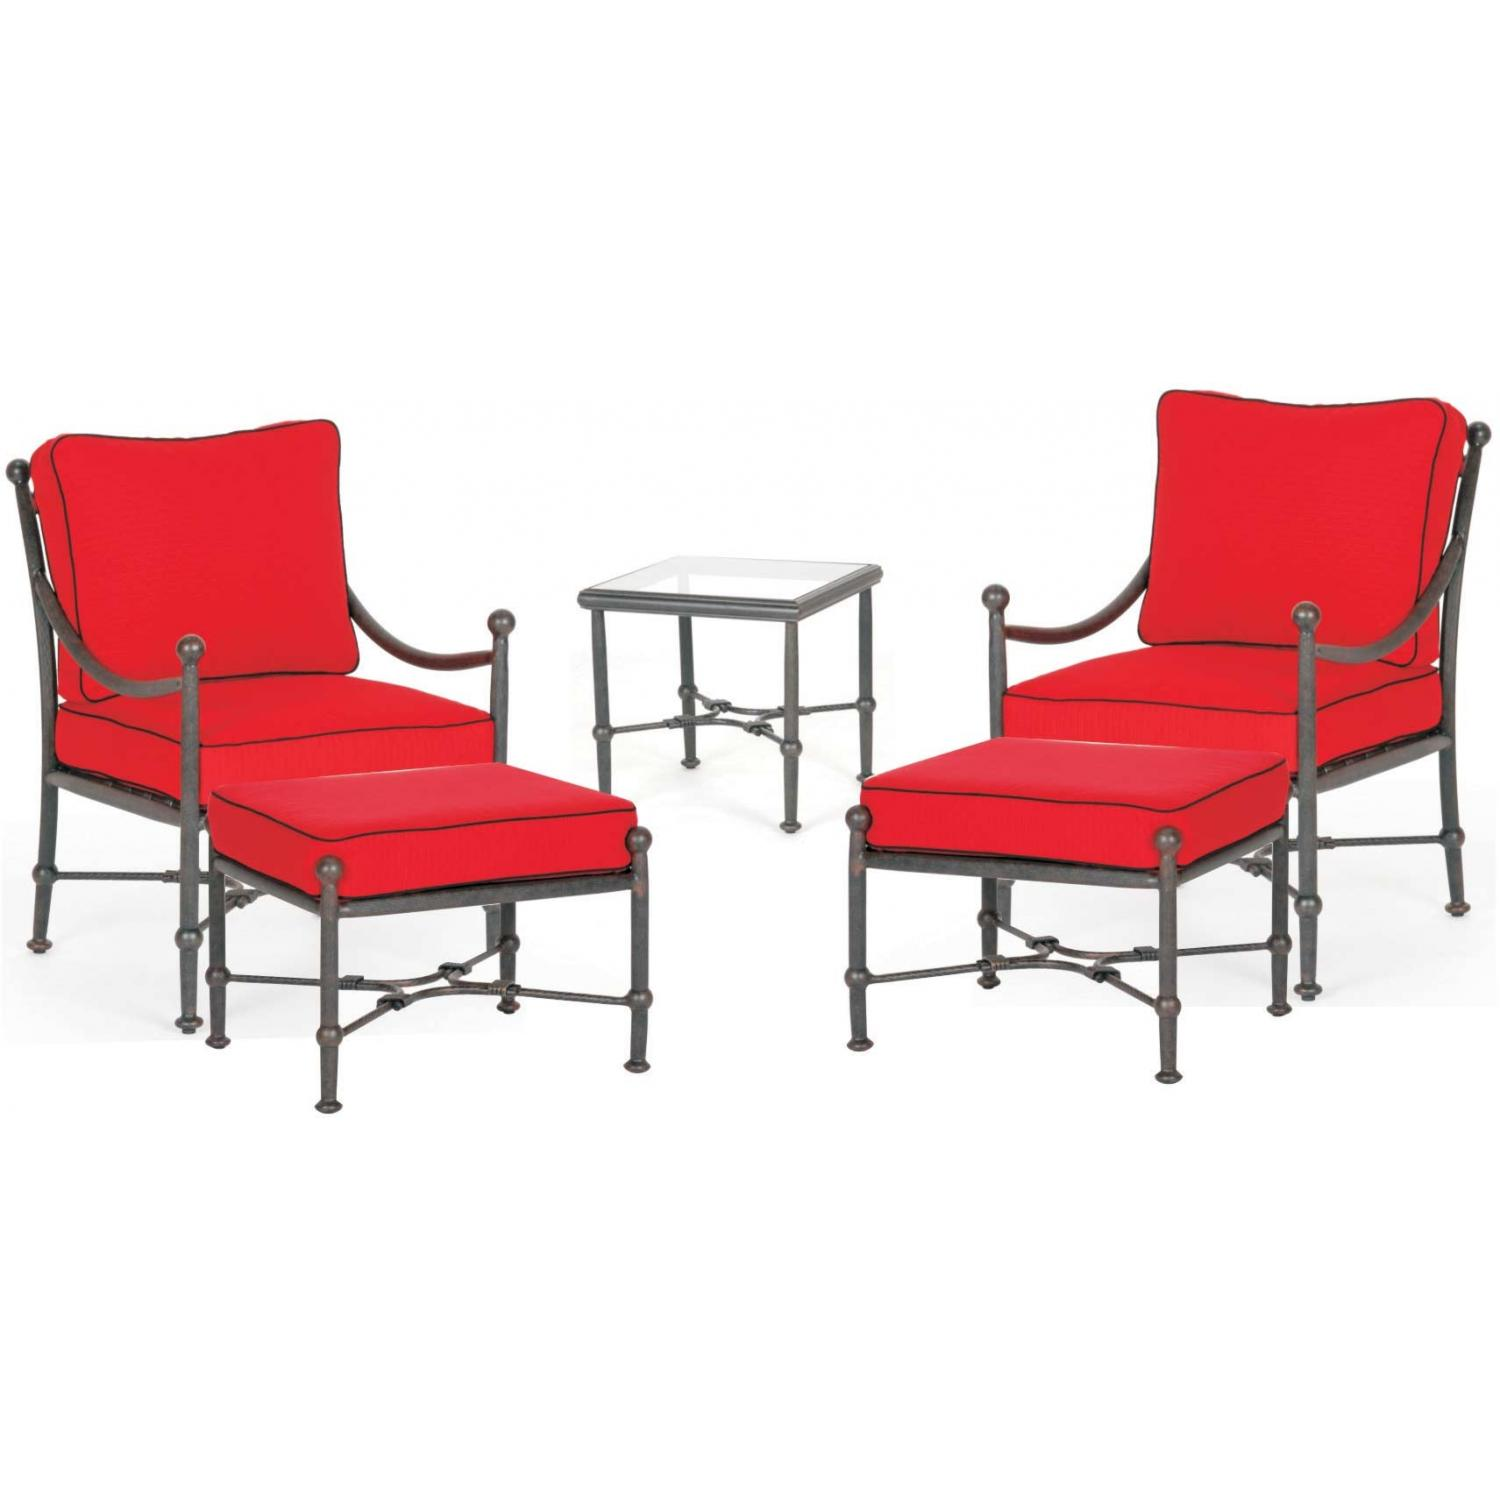 Caluco Origin Aluminum Club Chair Lounge Set With Ottomans